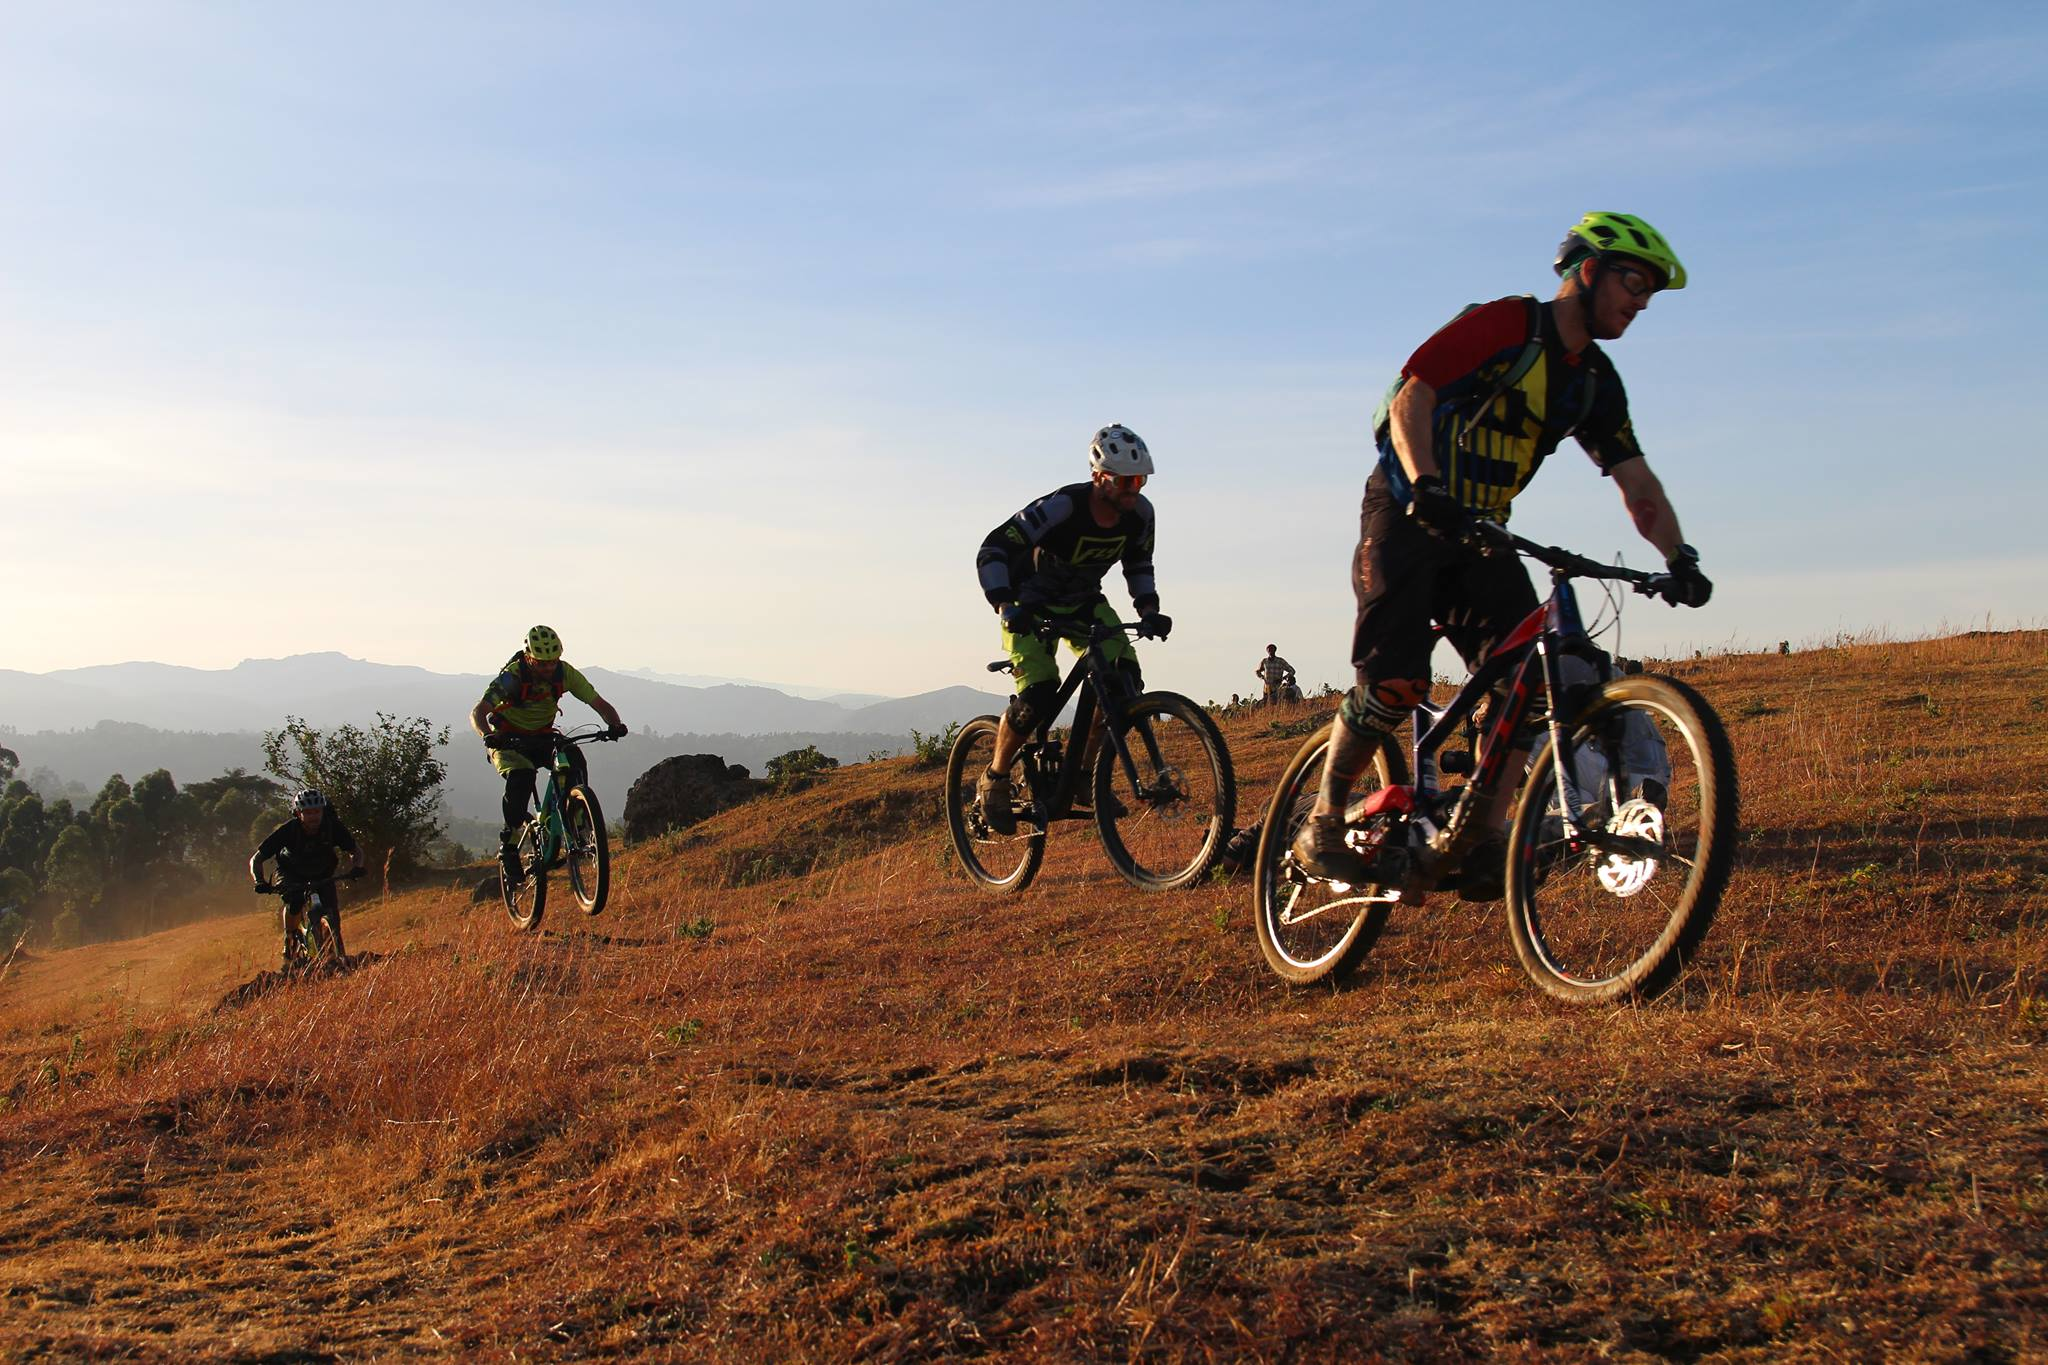 MTB riding resources.